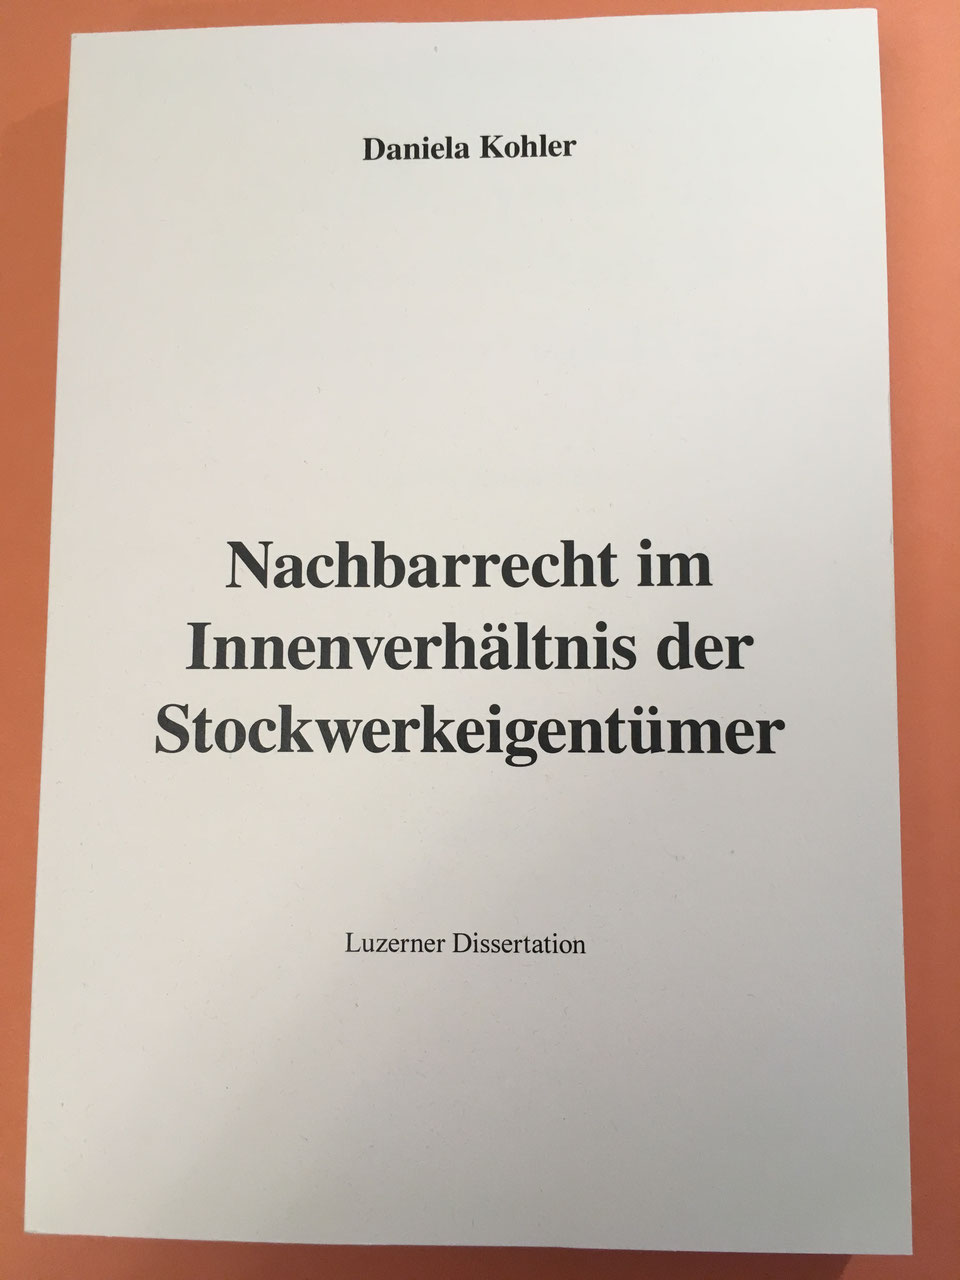 Ph.D. Theses - RWTH Publications